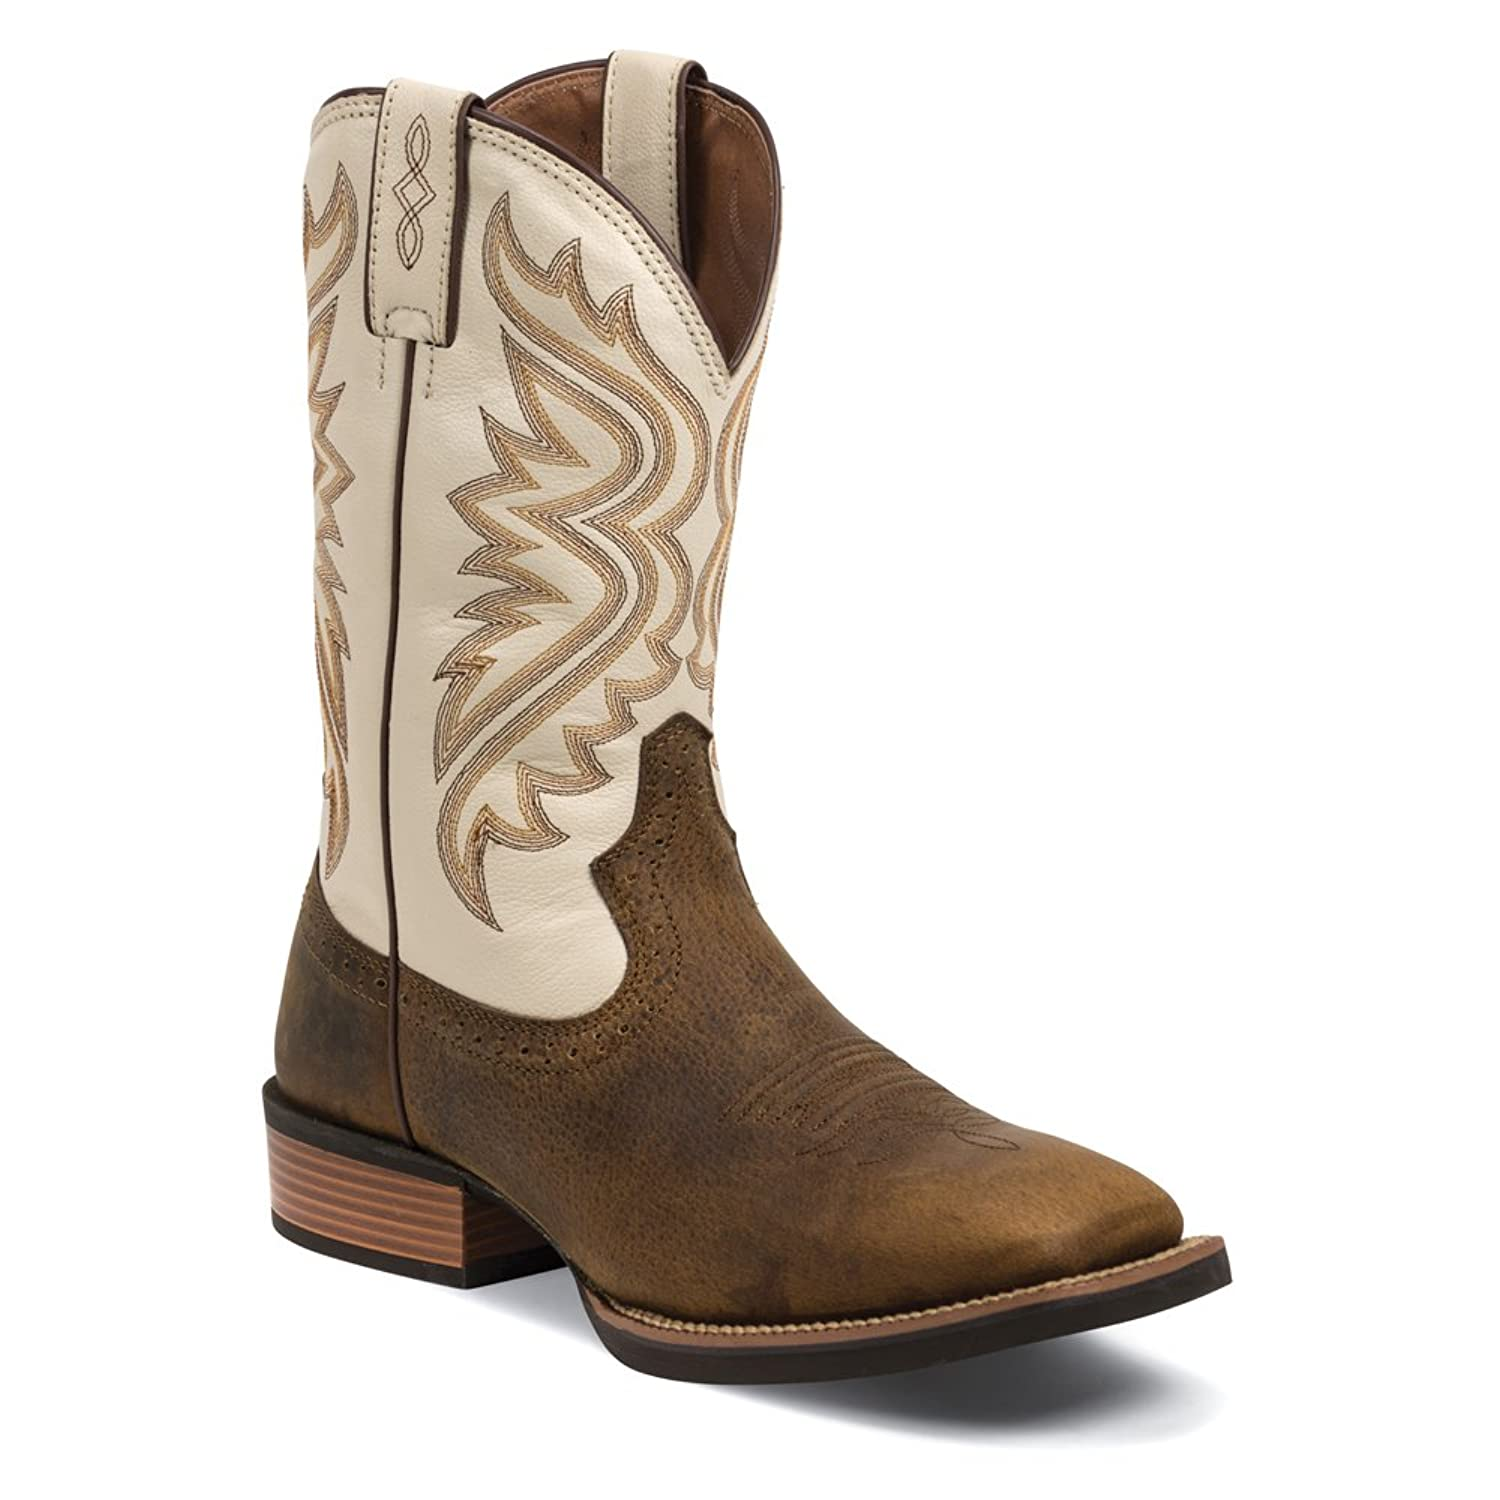 Justin Boots Men's Stampede Collection SV7222 Boots